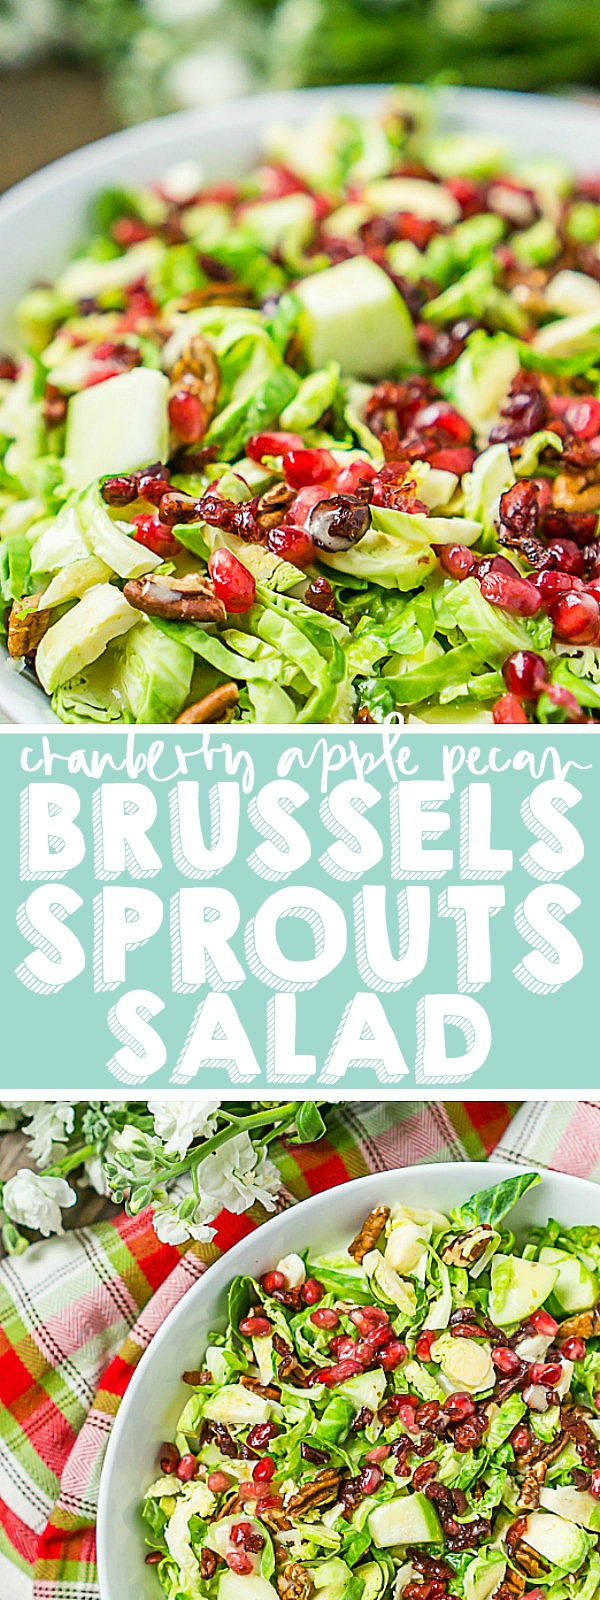 With only 15 minutes of prep time, this crunchy Cranberry Apple Brussels Sprouts Salad recipe is a satisfying salad for your holiday table! Cranberries, apples, and pecans combine for a perfect seasonal holiday side dish. | THE LOVE NERDS #Thanksgivingsalad #Christmassalad